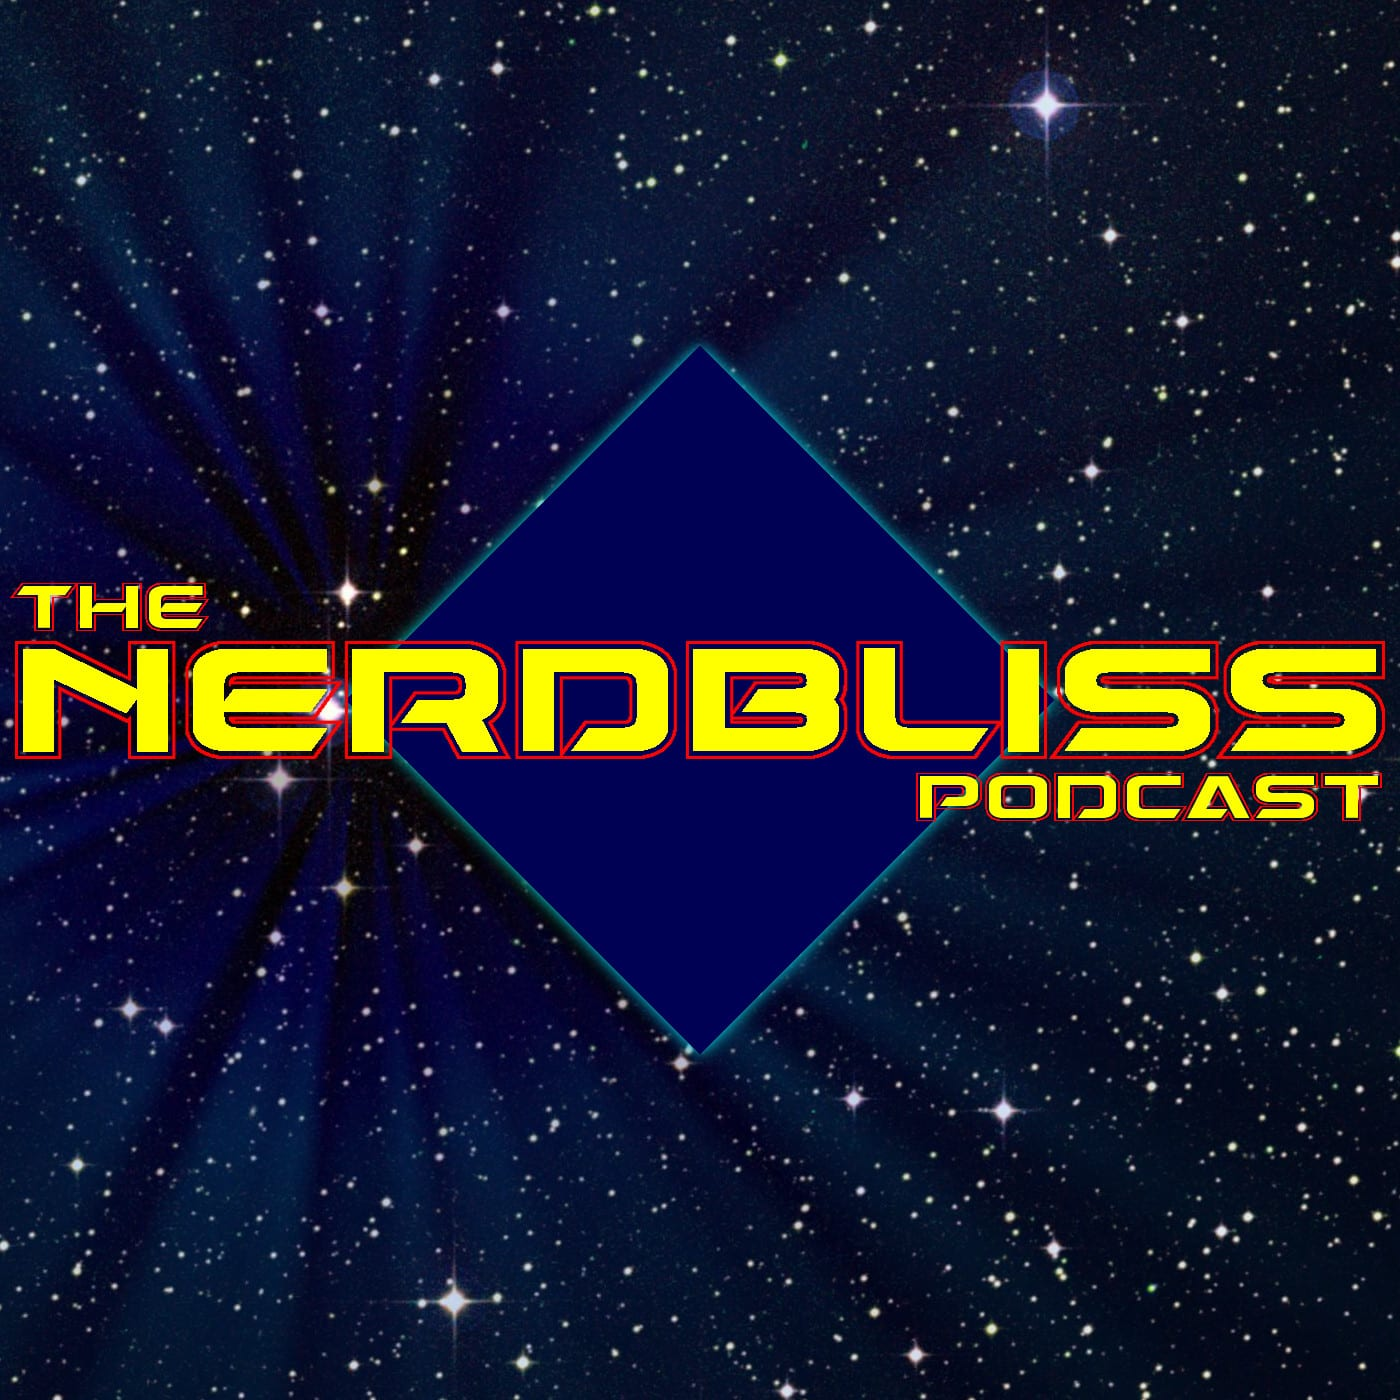 The Nerd Bliss Podcast